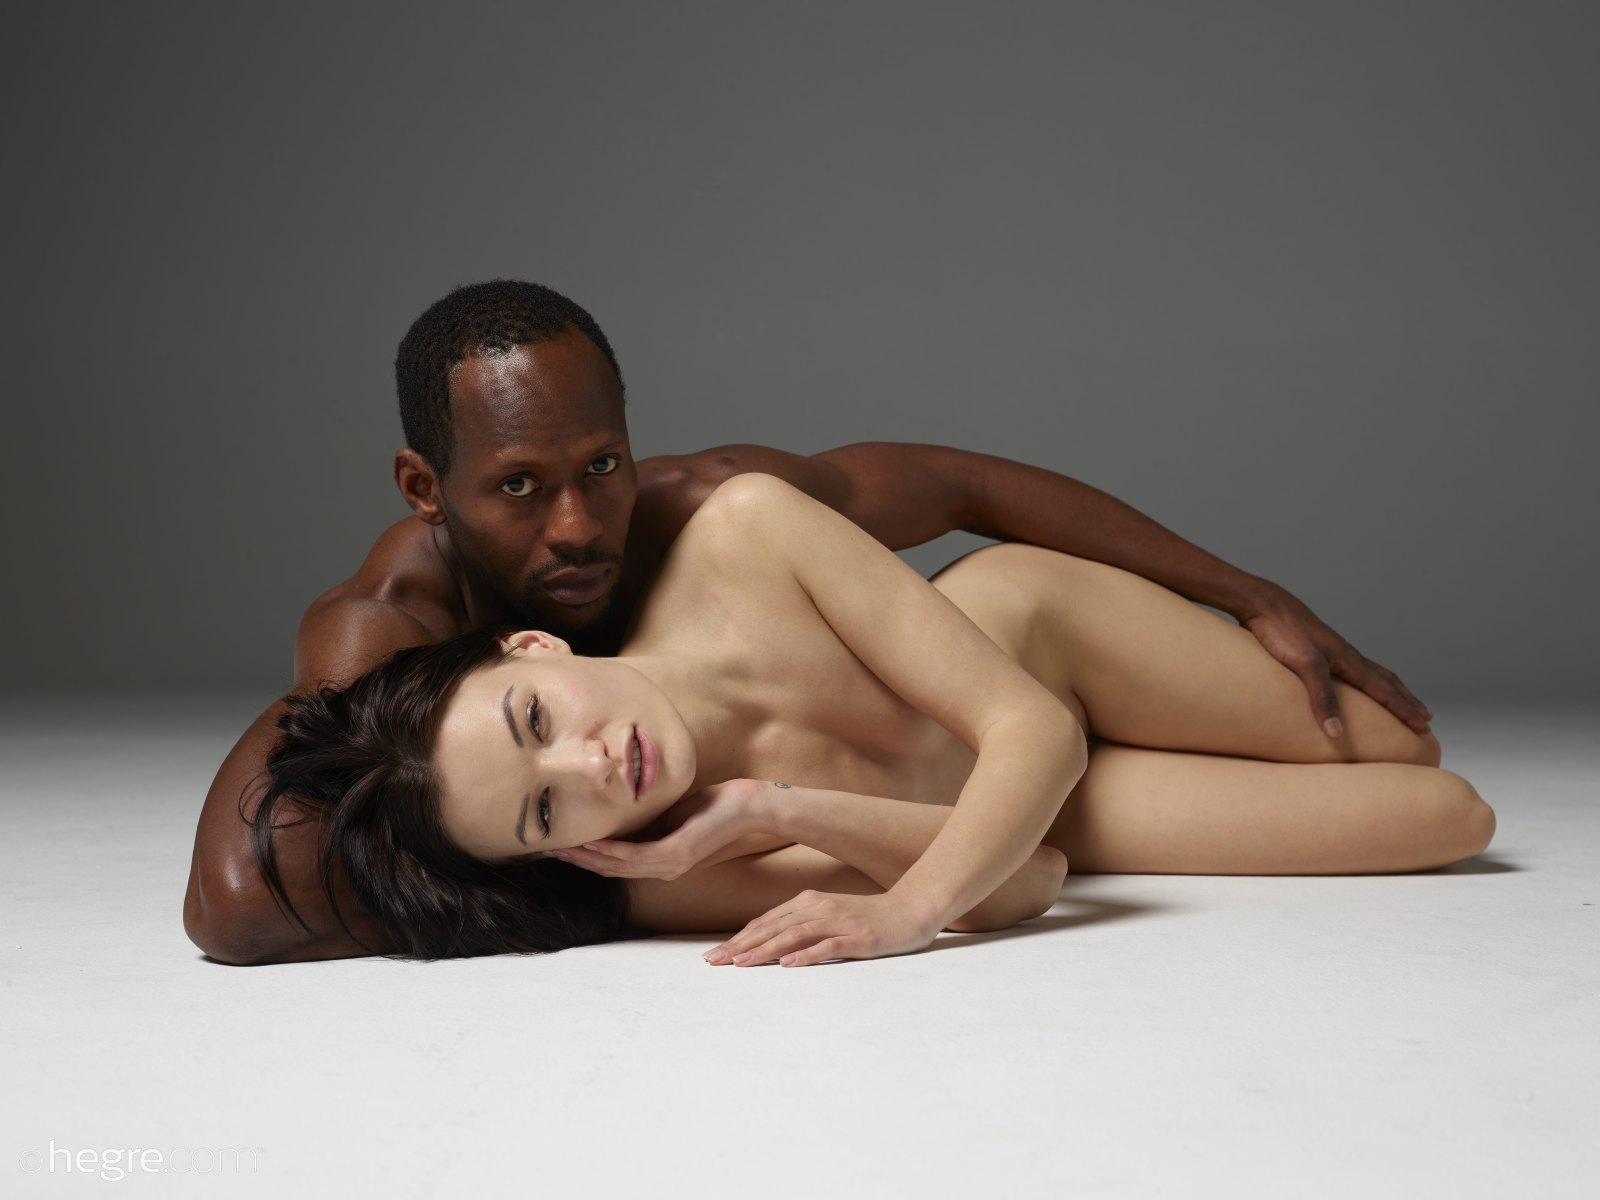 interracial nude art